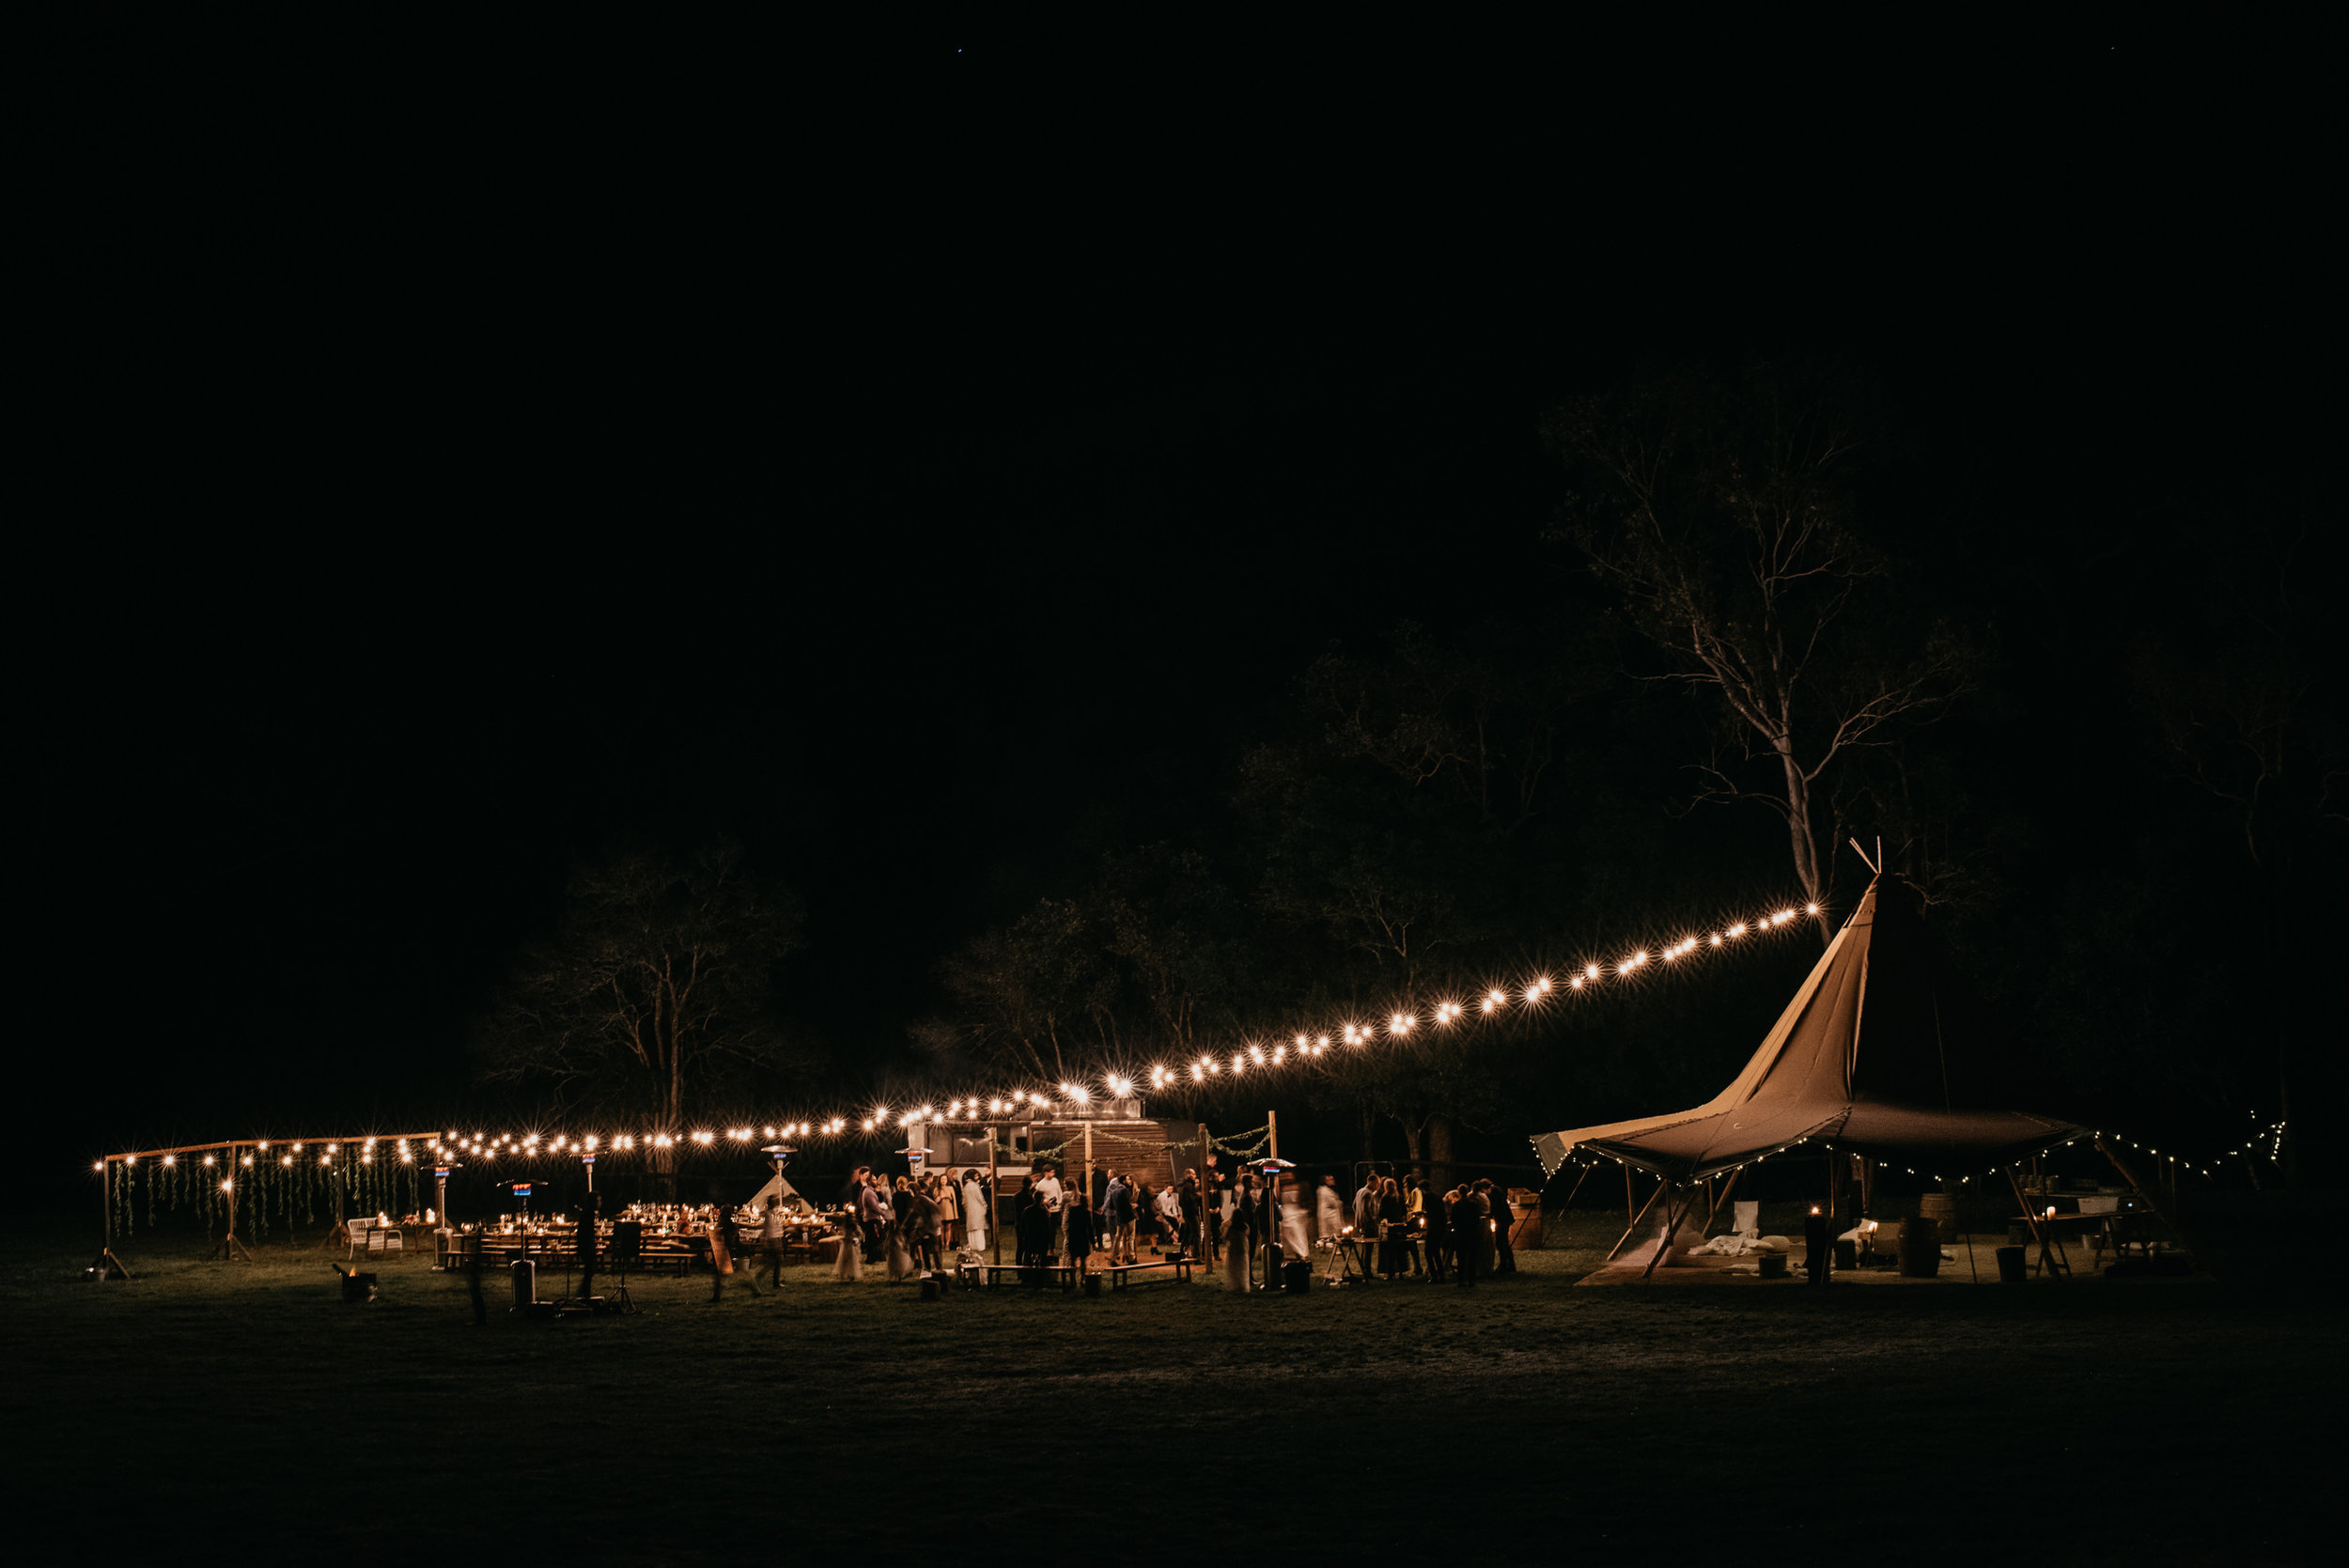 Tents & Marquees - Tipi Luxe Marquees - http://tipiluxe.com.auEvents in Tents - http://eventsintents.com.au/Sperry Tents Sunshine Coast - https://www.sperrytentssunshinecoast.com.au/